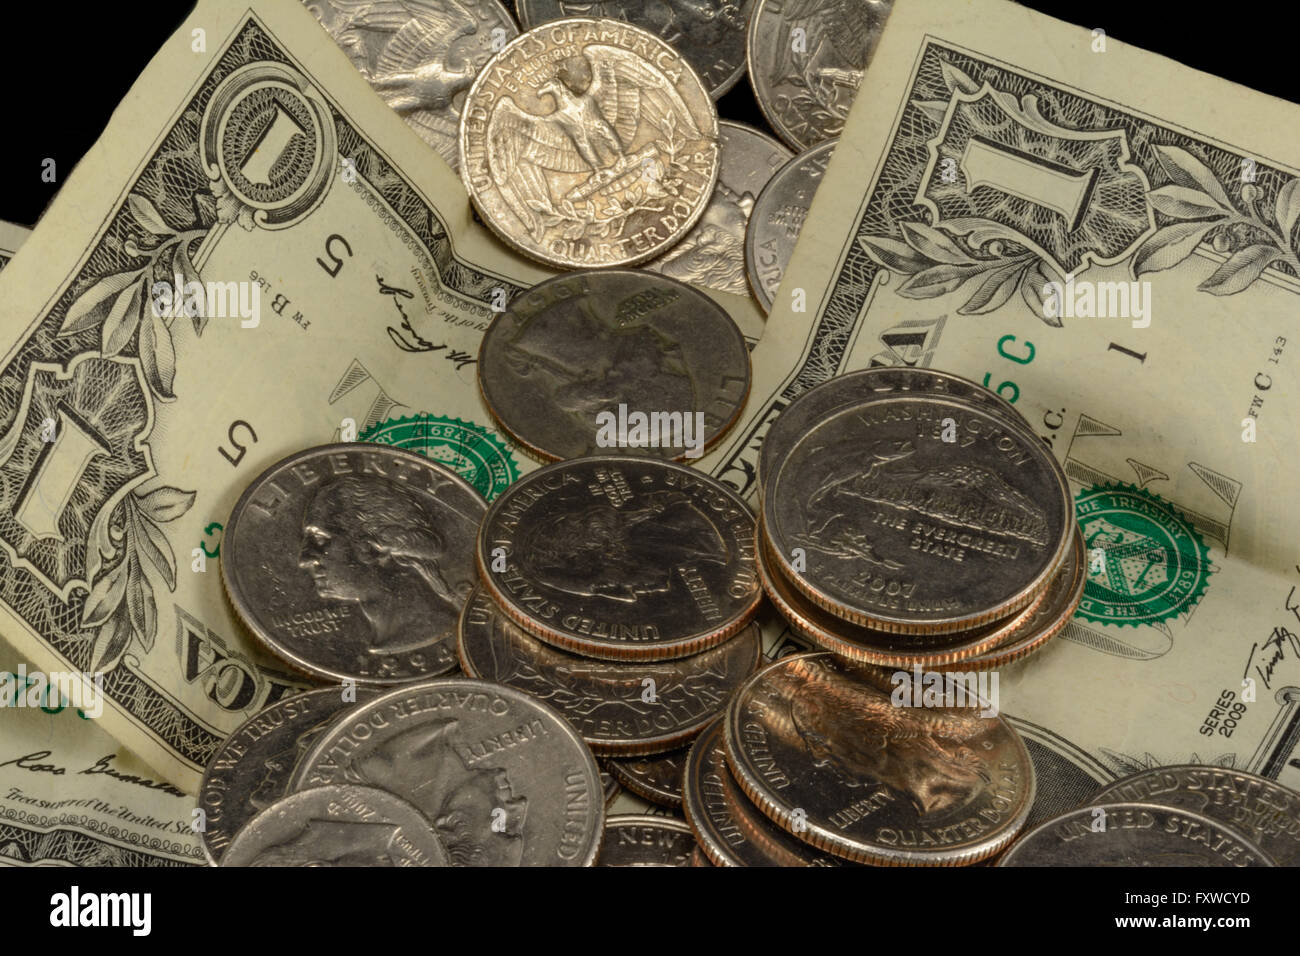 Savings, thrift, poverty, taxes, riches, couch cushion money, dollars, dimes, nickels and quarters - Stock Image